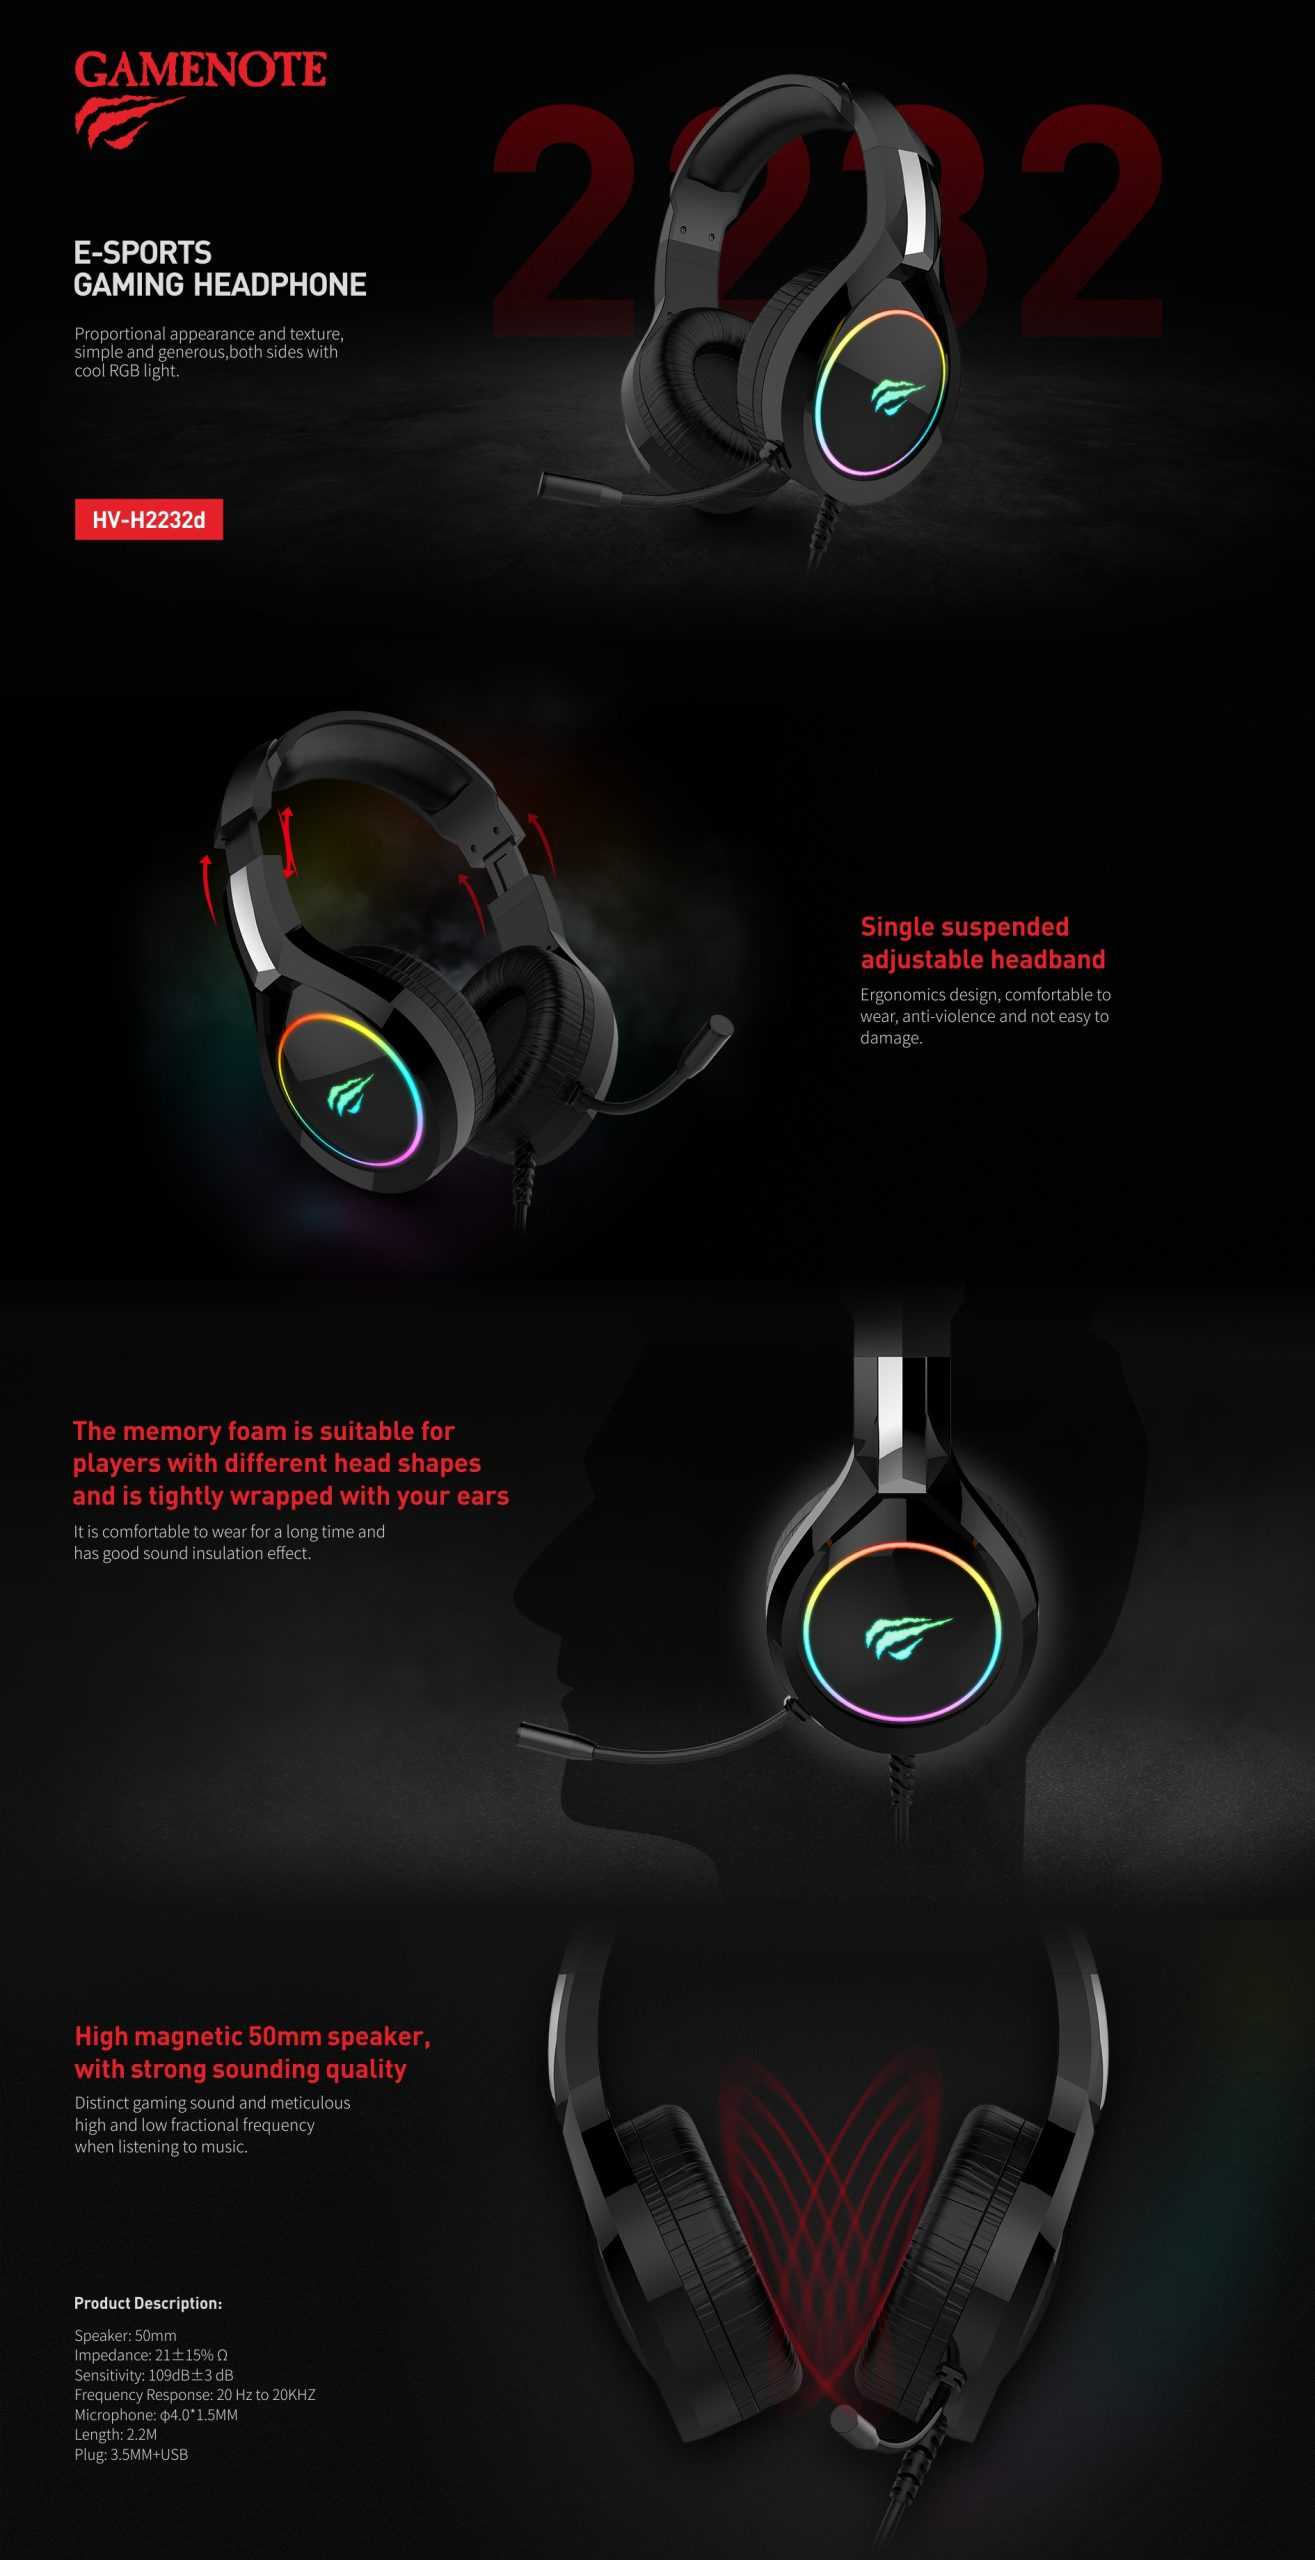 HAVIT® HV-H2232D E-SPORTS GAMING HEADPHONE